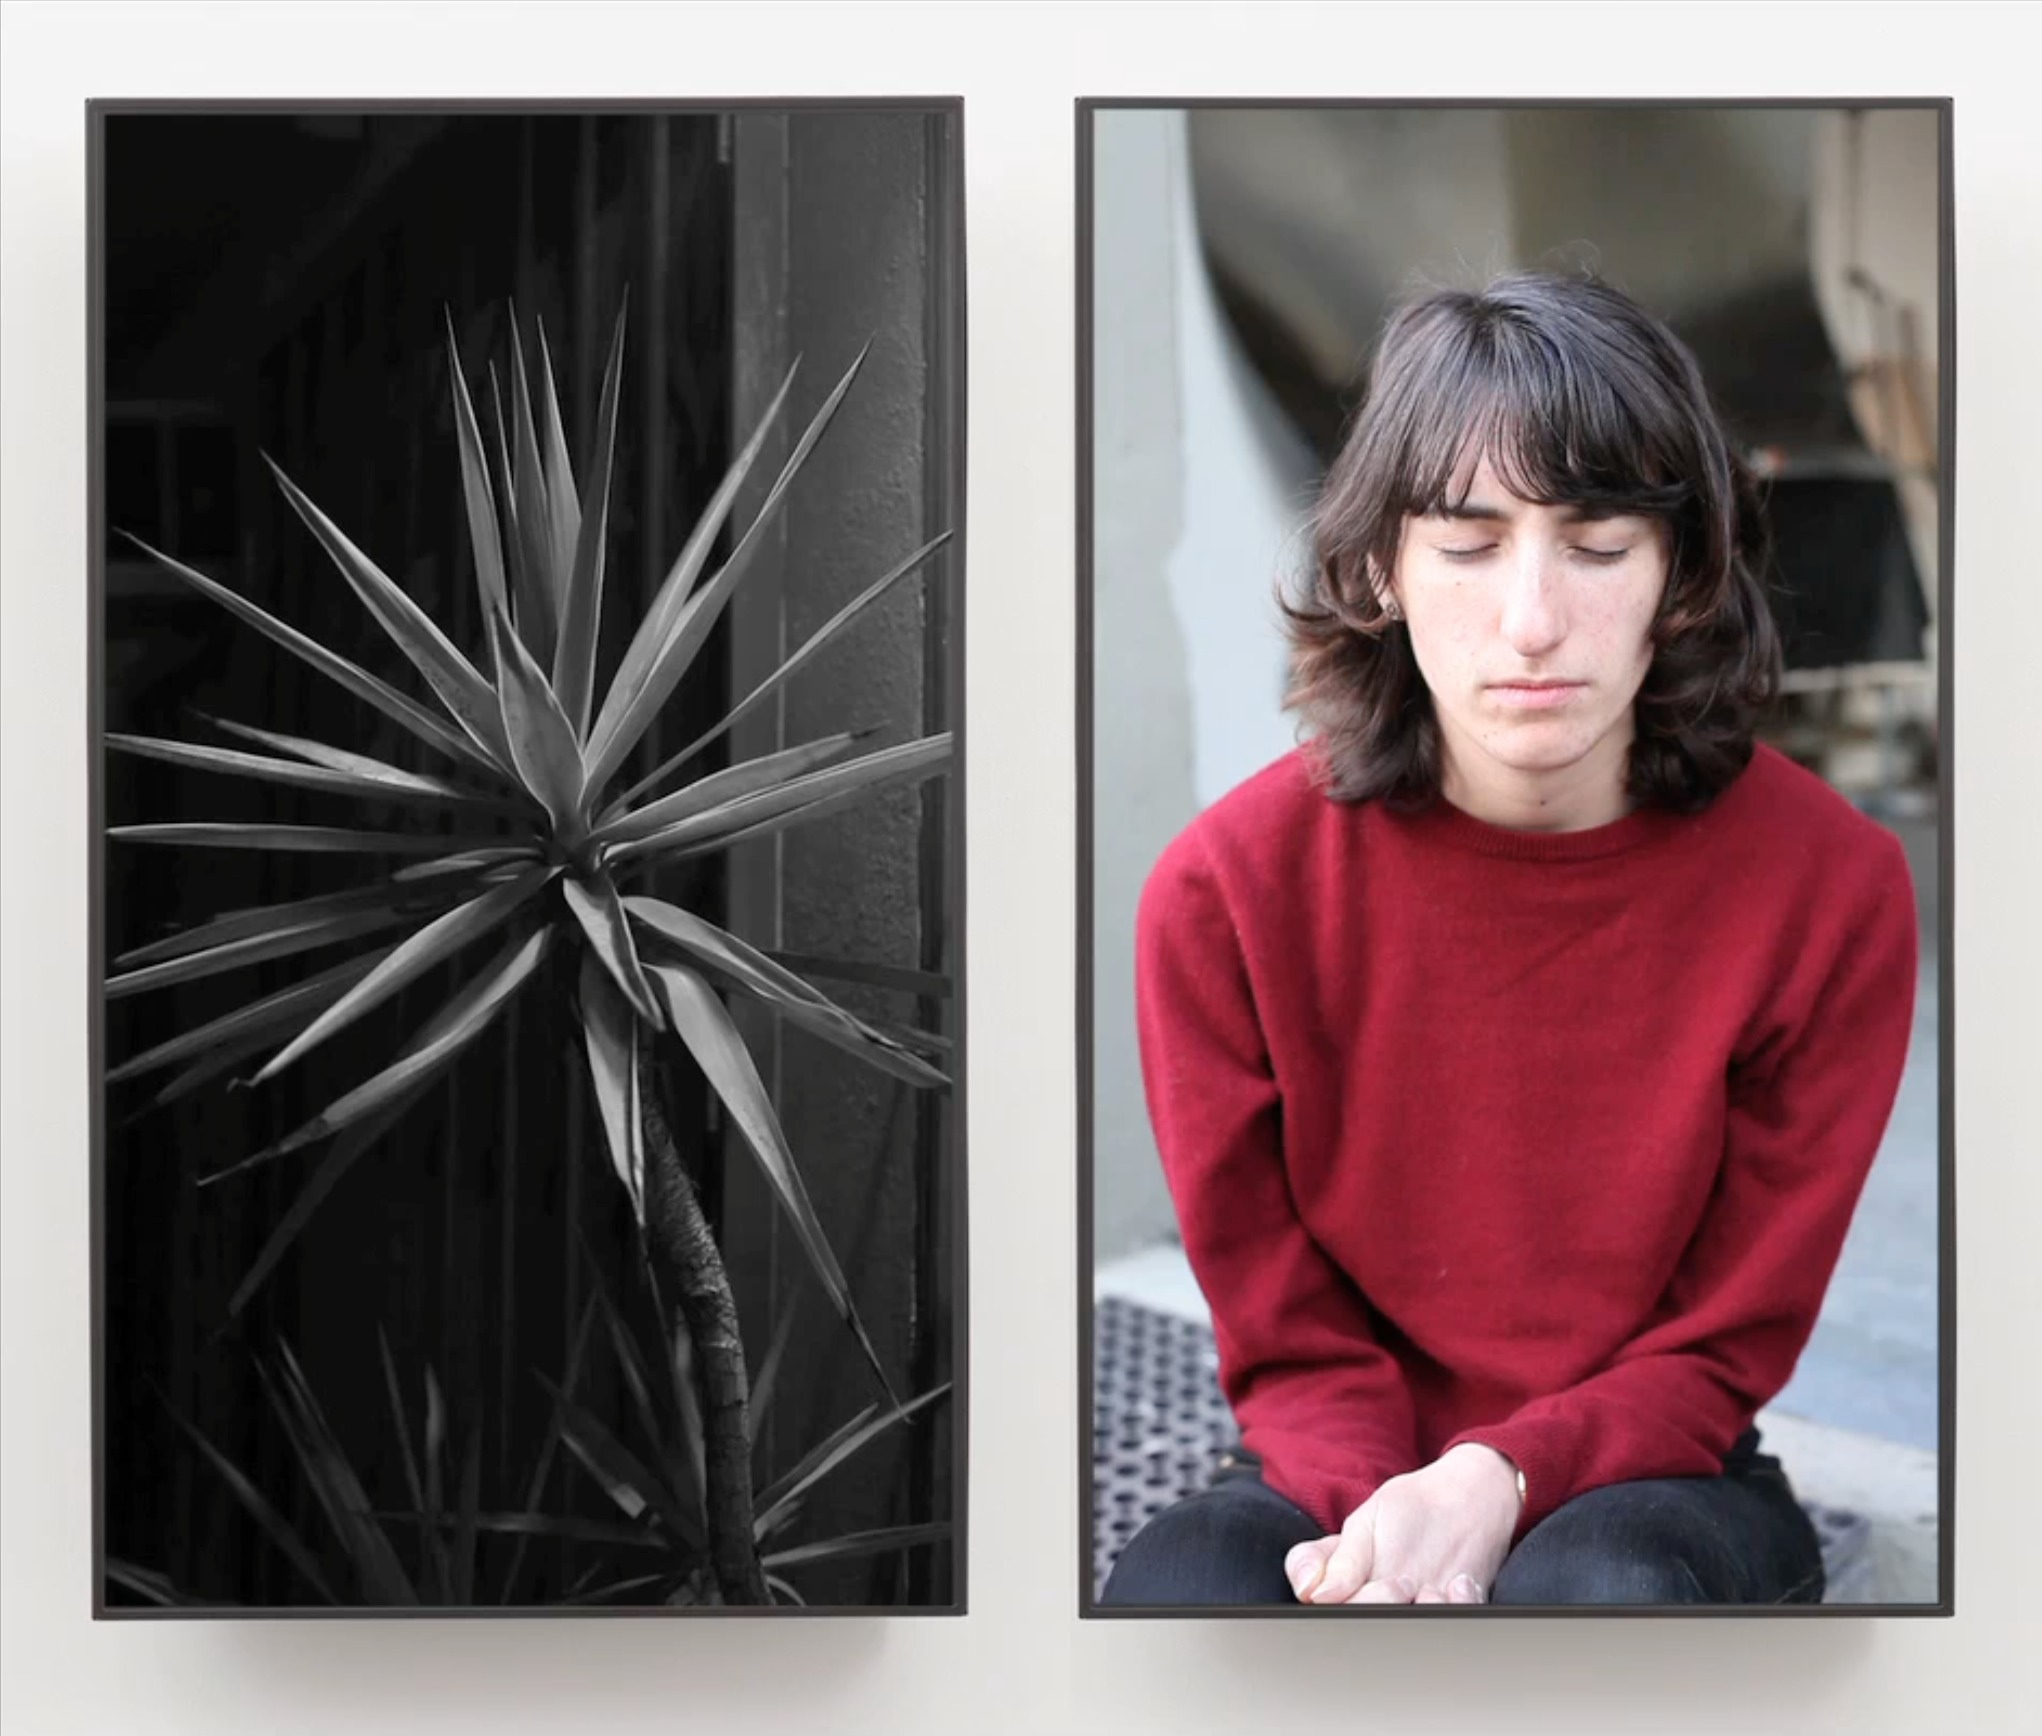 Owen Kydd, Yukka Black and White and Marina, 2012. As seen on a MacBook Pro, 2014.